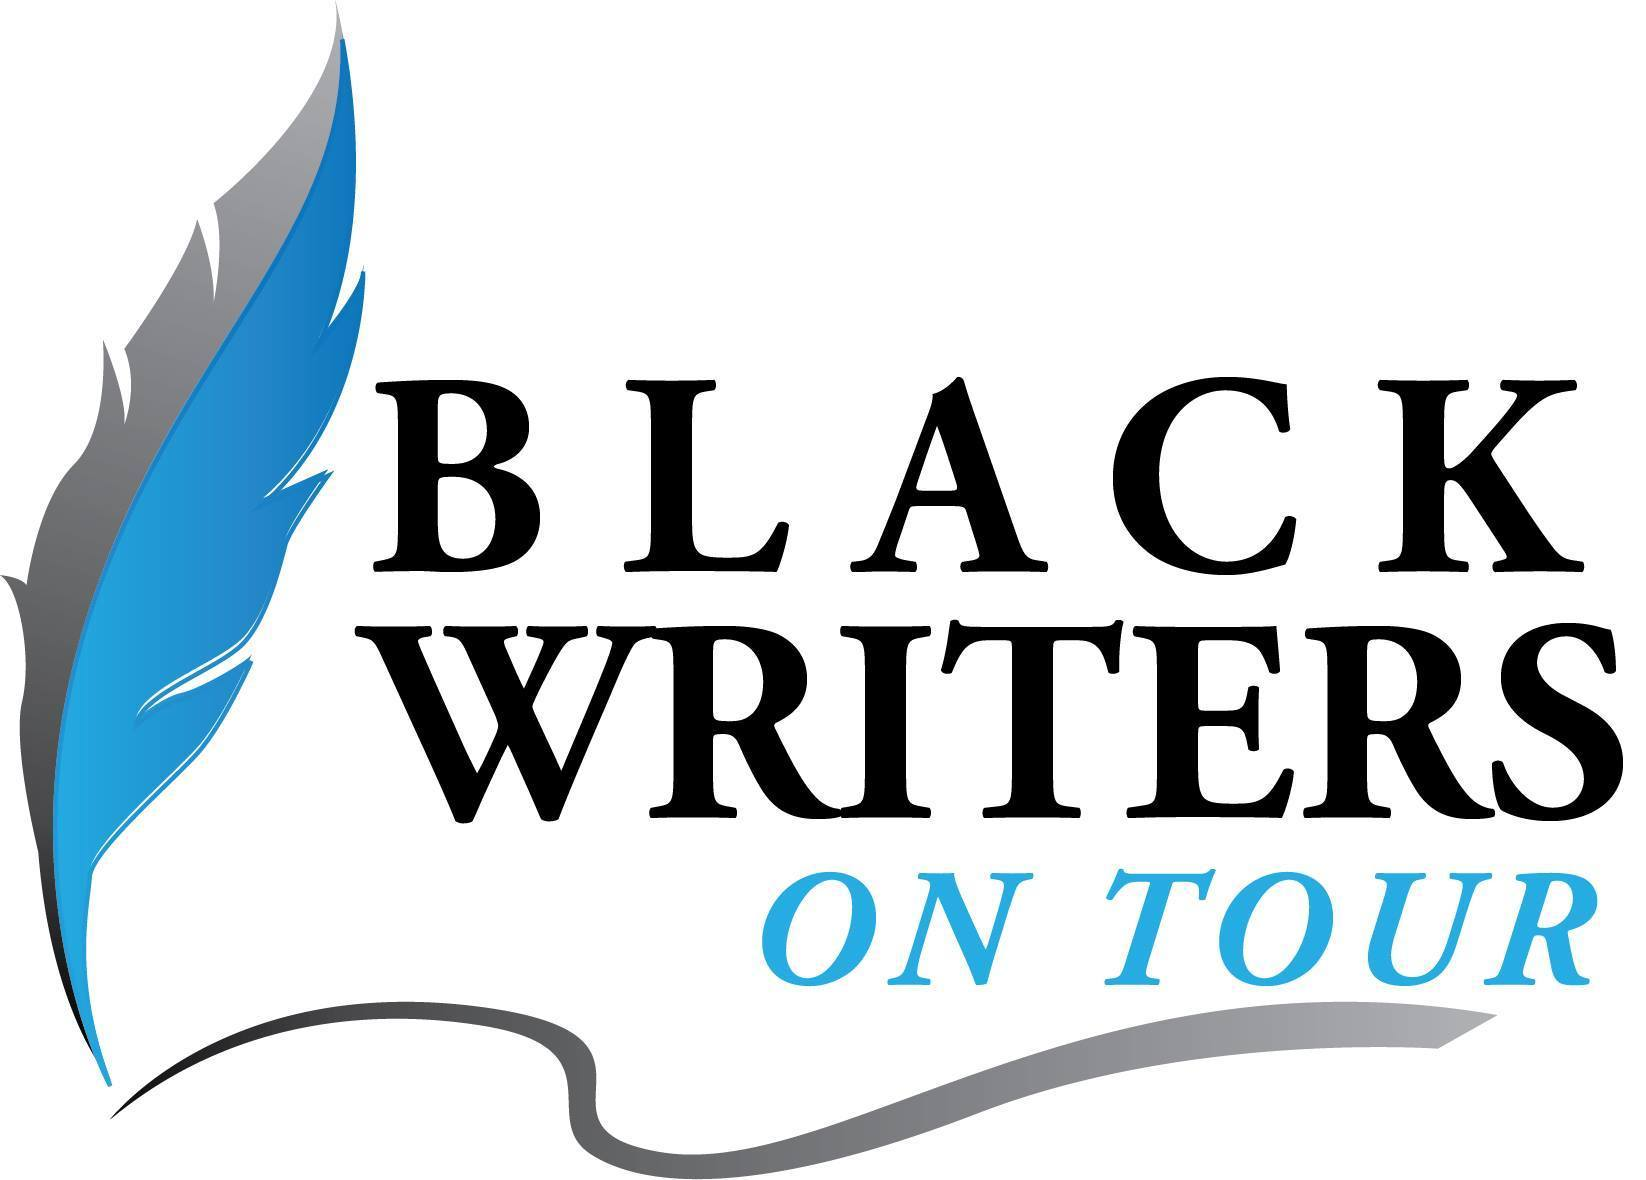 Black Events In Los Angeles 2020.2020 Black Writer S Black On Tour Book Fair And Technology